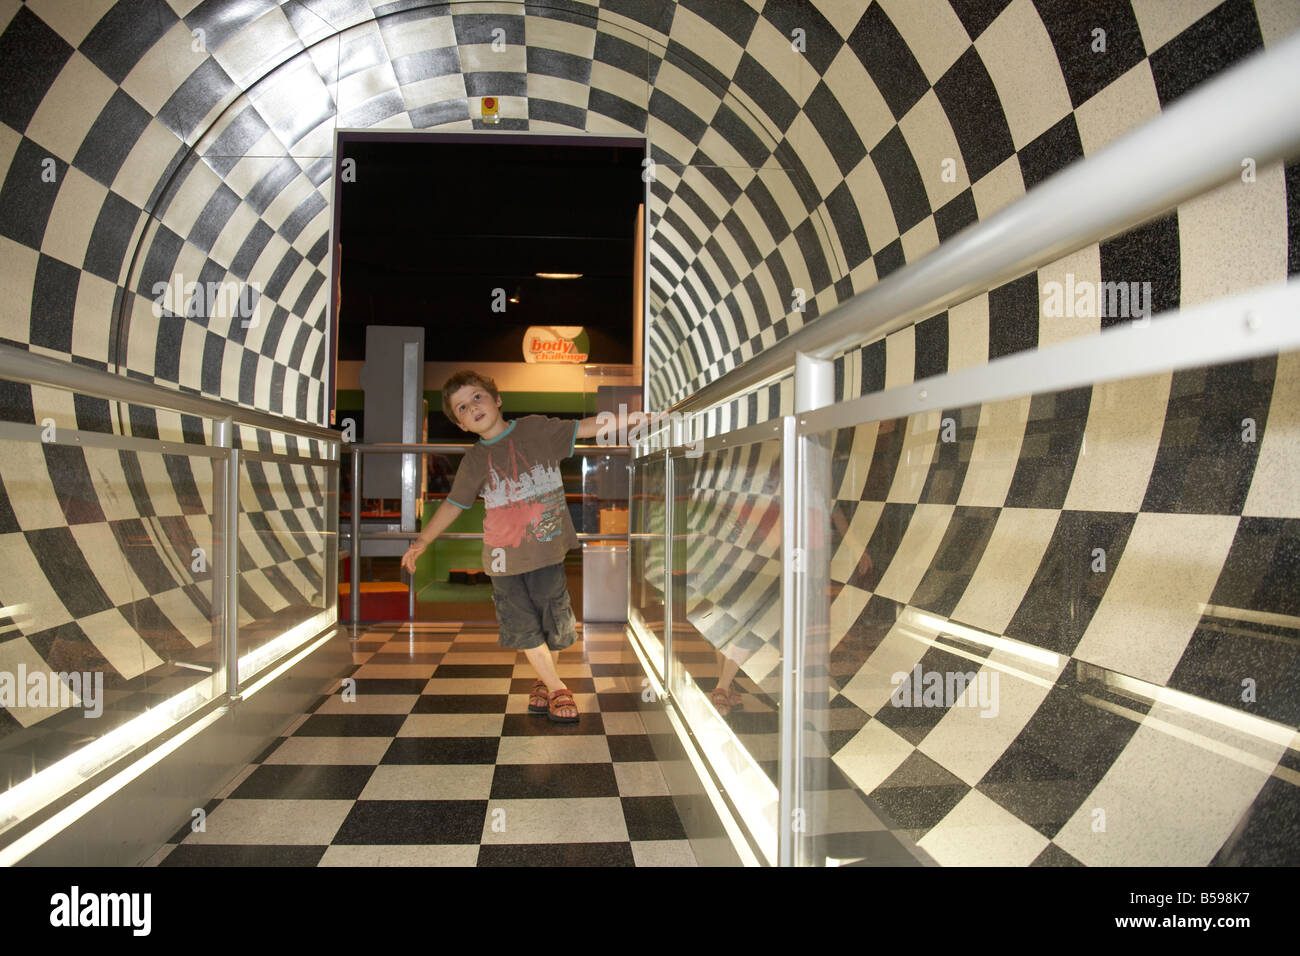 young boy round tube room black white checkerboard in Brisbane Queensland QLD Australia - Stock Image